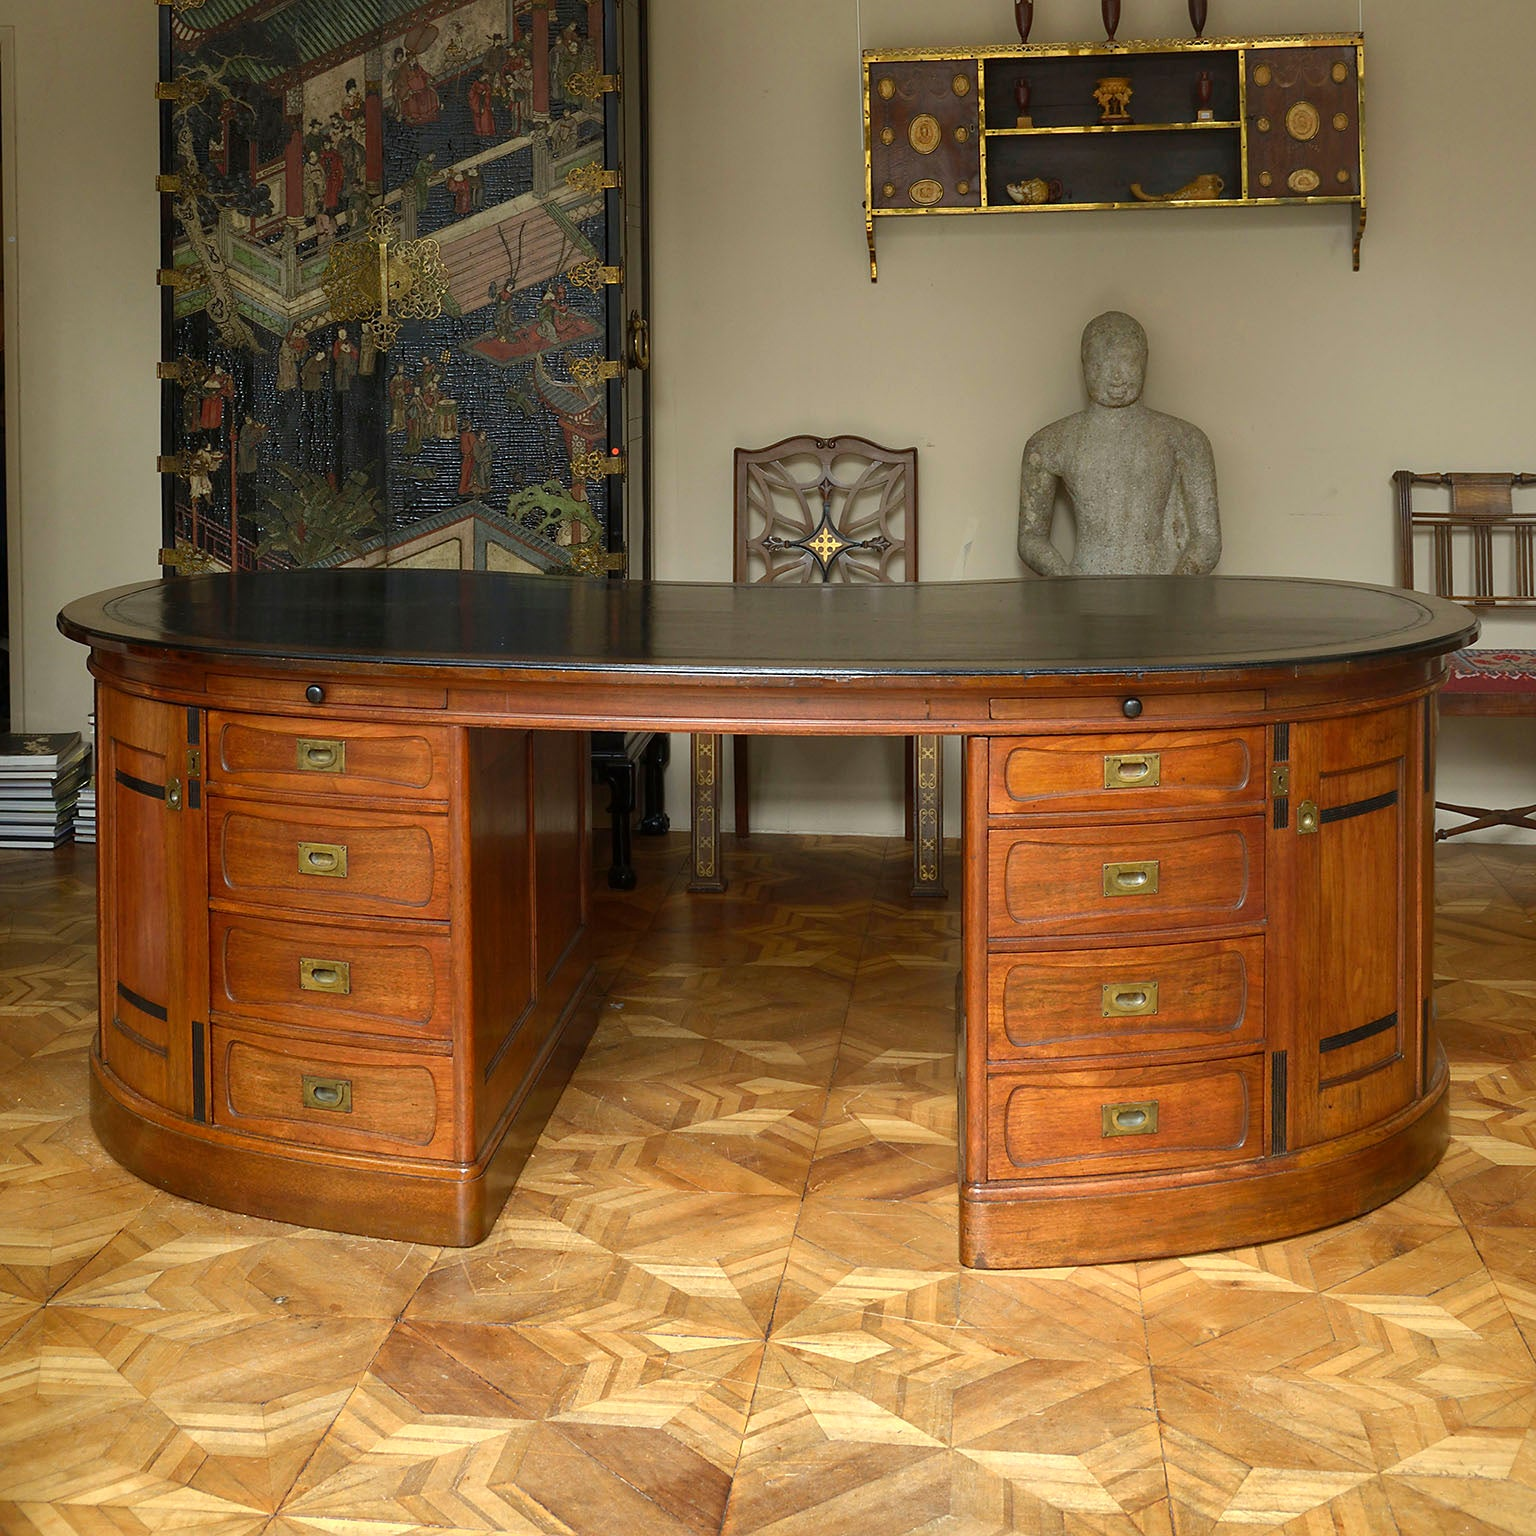 Walnut Kidney Shaped Library Desk by Julius Koenigsberger